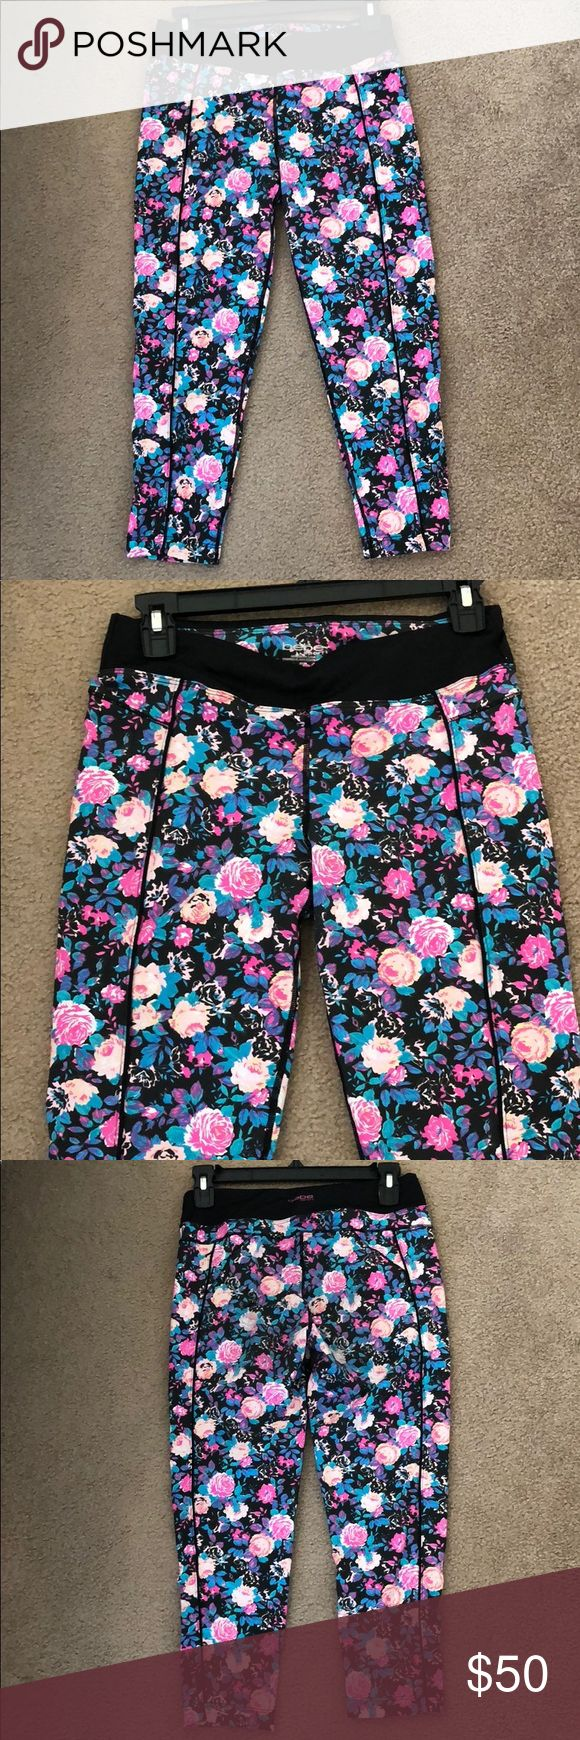 """Bebe Sport neon floral workout pant legging M Bebe Sport neon floral workout crop pant legging  Size Medium  Super cute bright floral print crops; black slimming seams down front and sides of legs.  Outer seam length: ~29.5"""" Inseam length: ~21.5""""  Worn once! Washed on delicate, hung dry  Sorry no trades  *pants only, sports bra not included. bebe Pants Ankle & Cropped"""